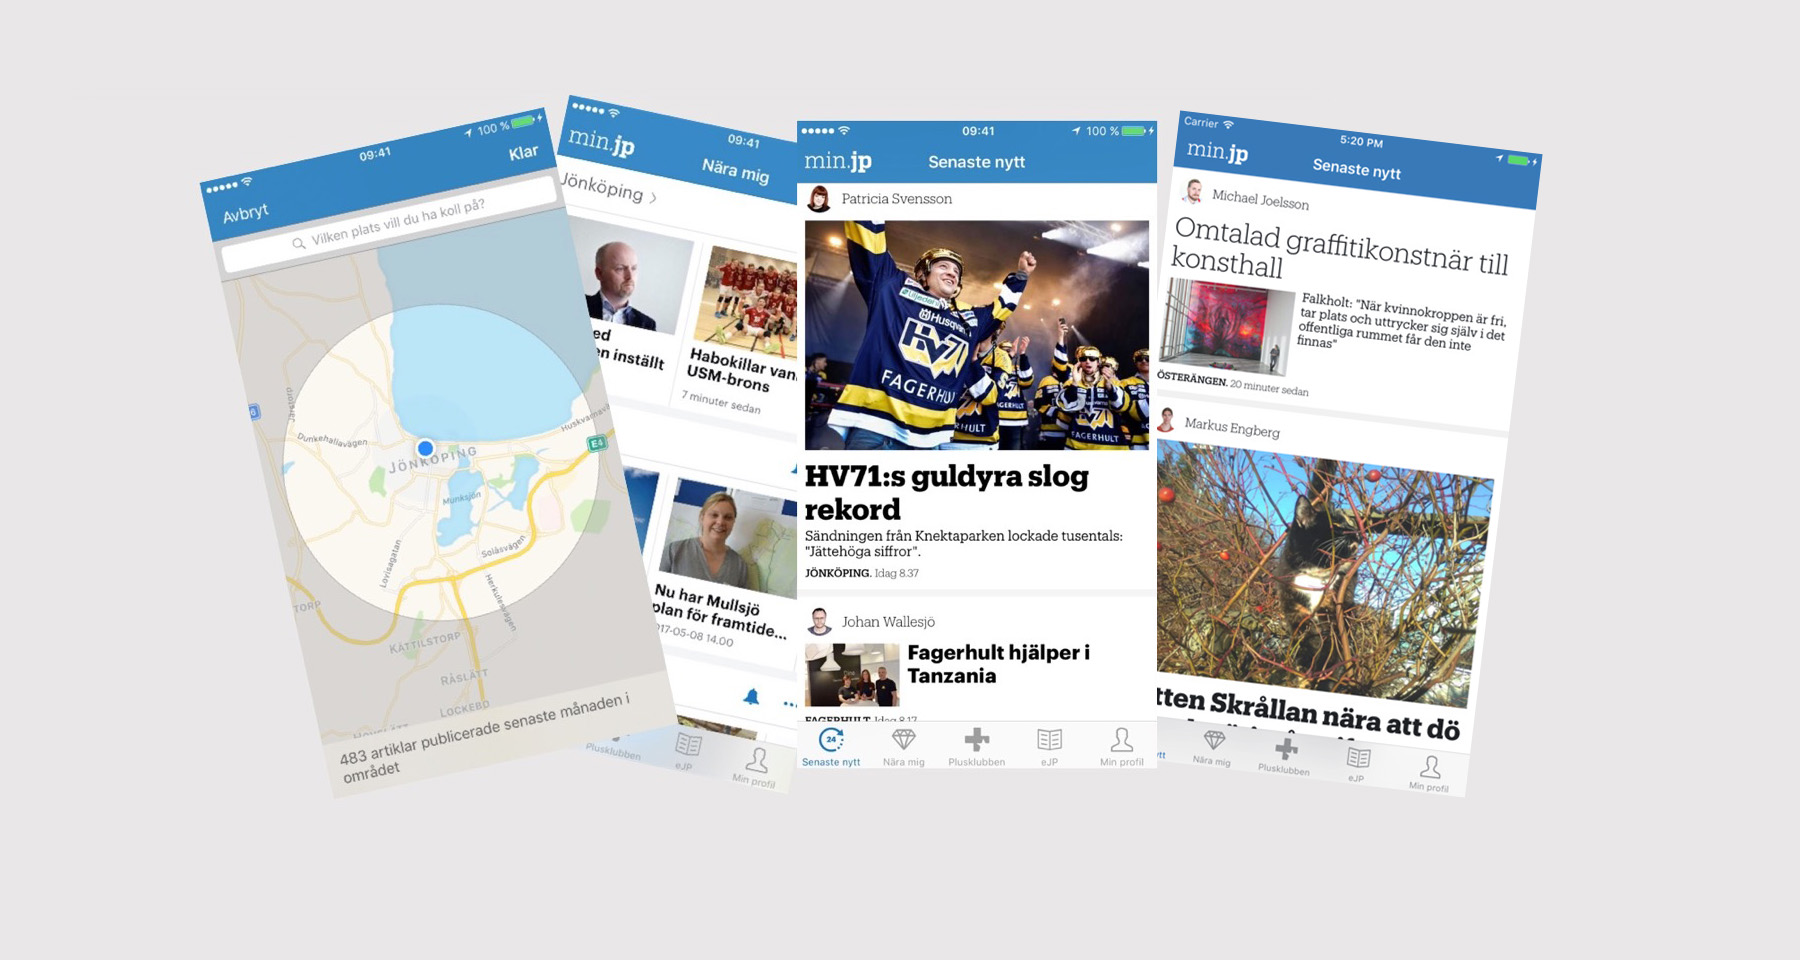 Hallpressen increases paid content with personalised local news stream